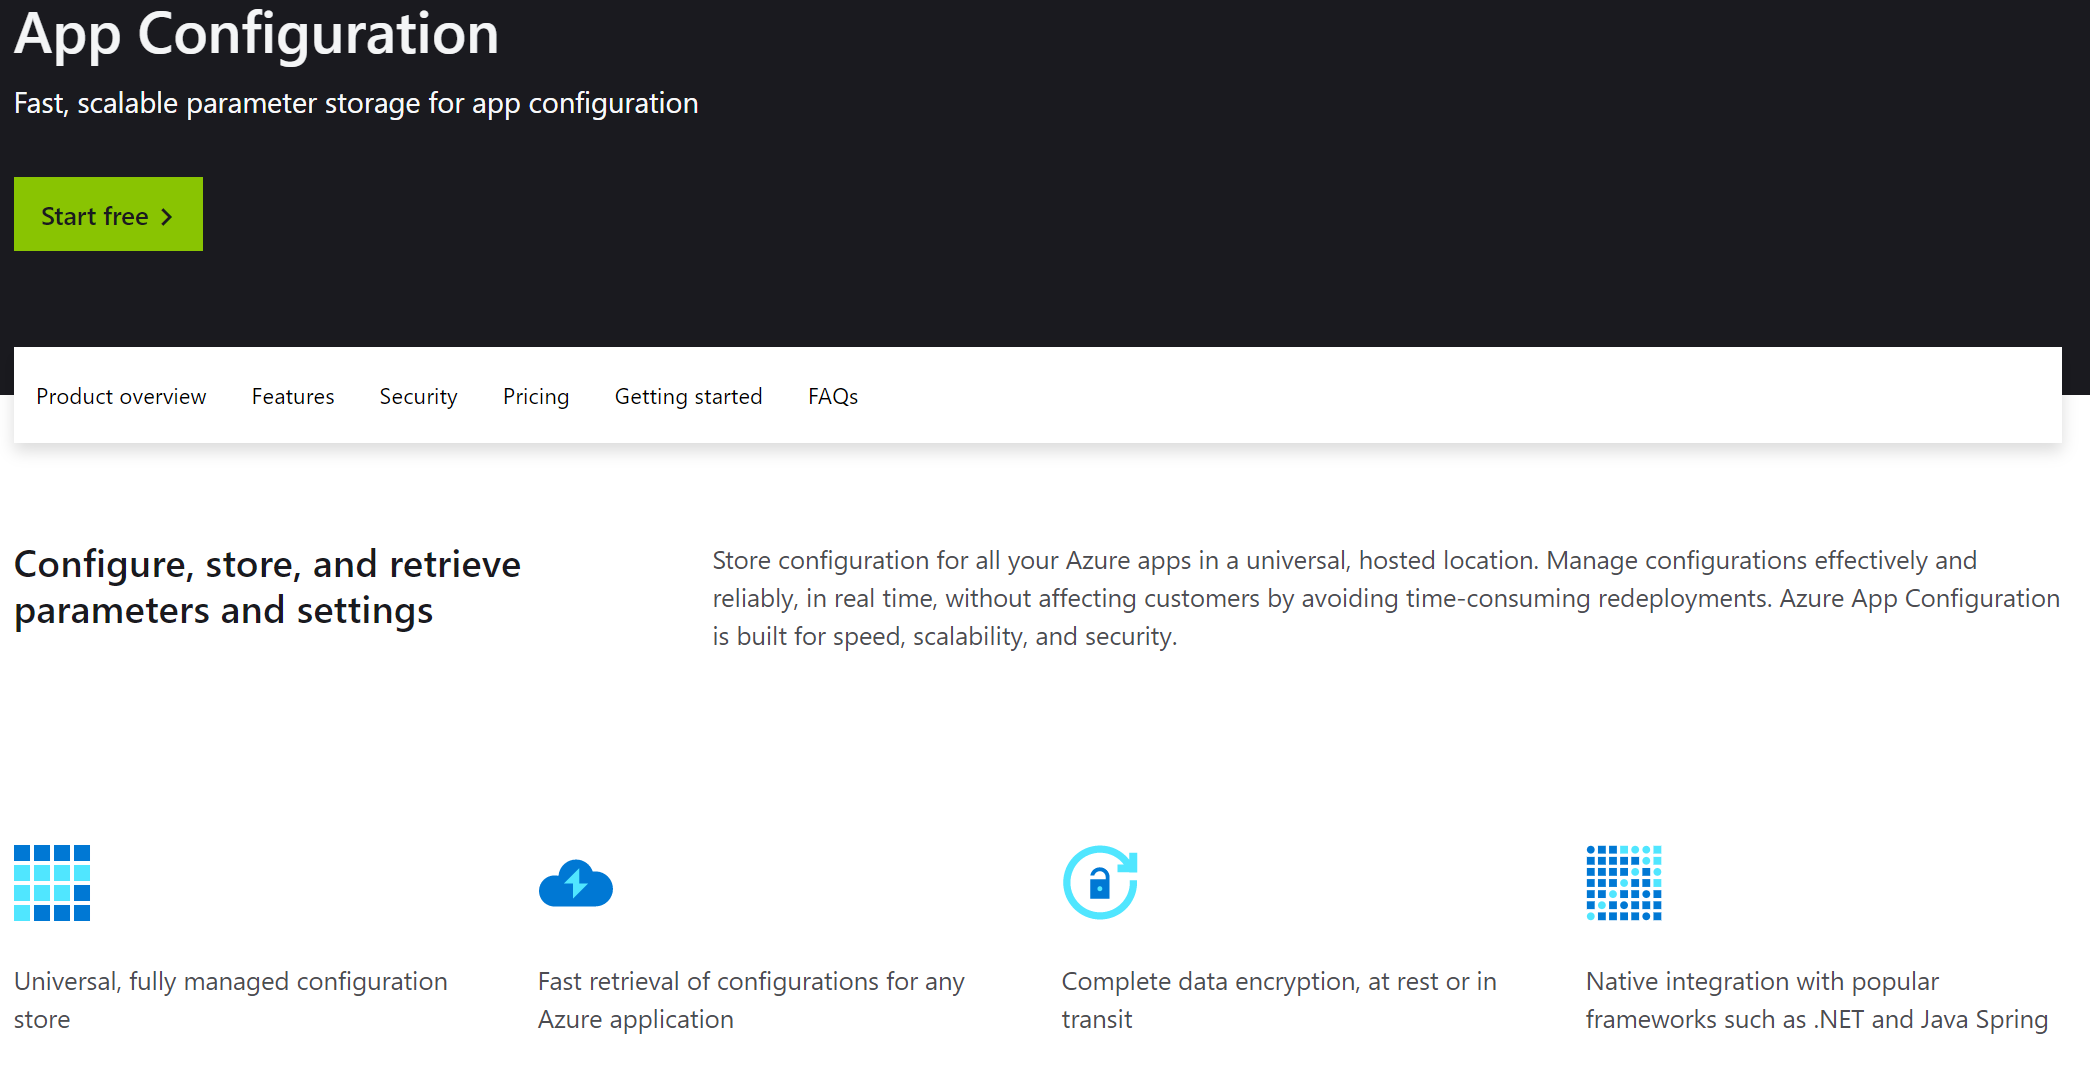 Introducing an easy way to work with Azure App Configuration in node projects